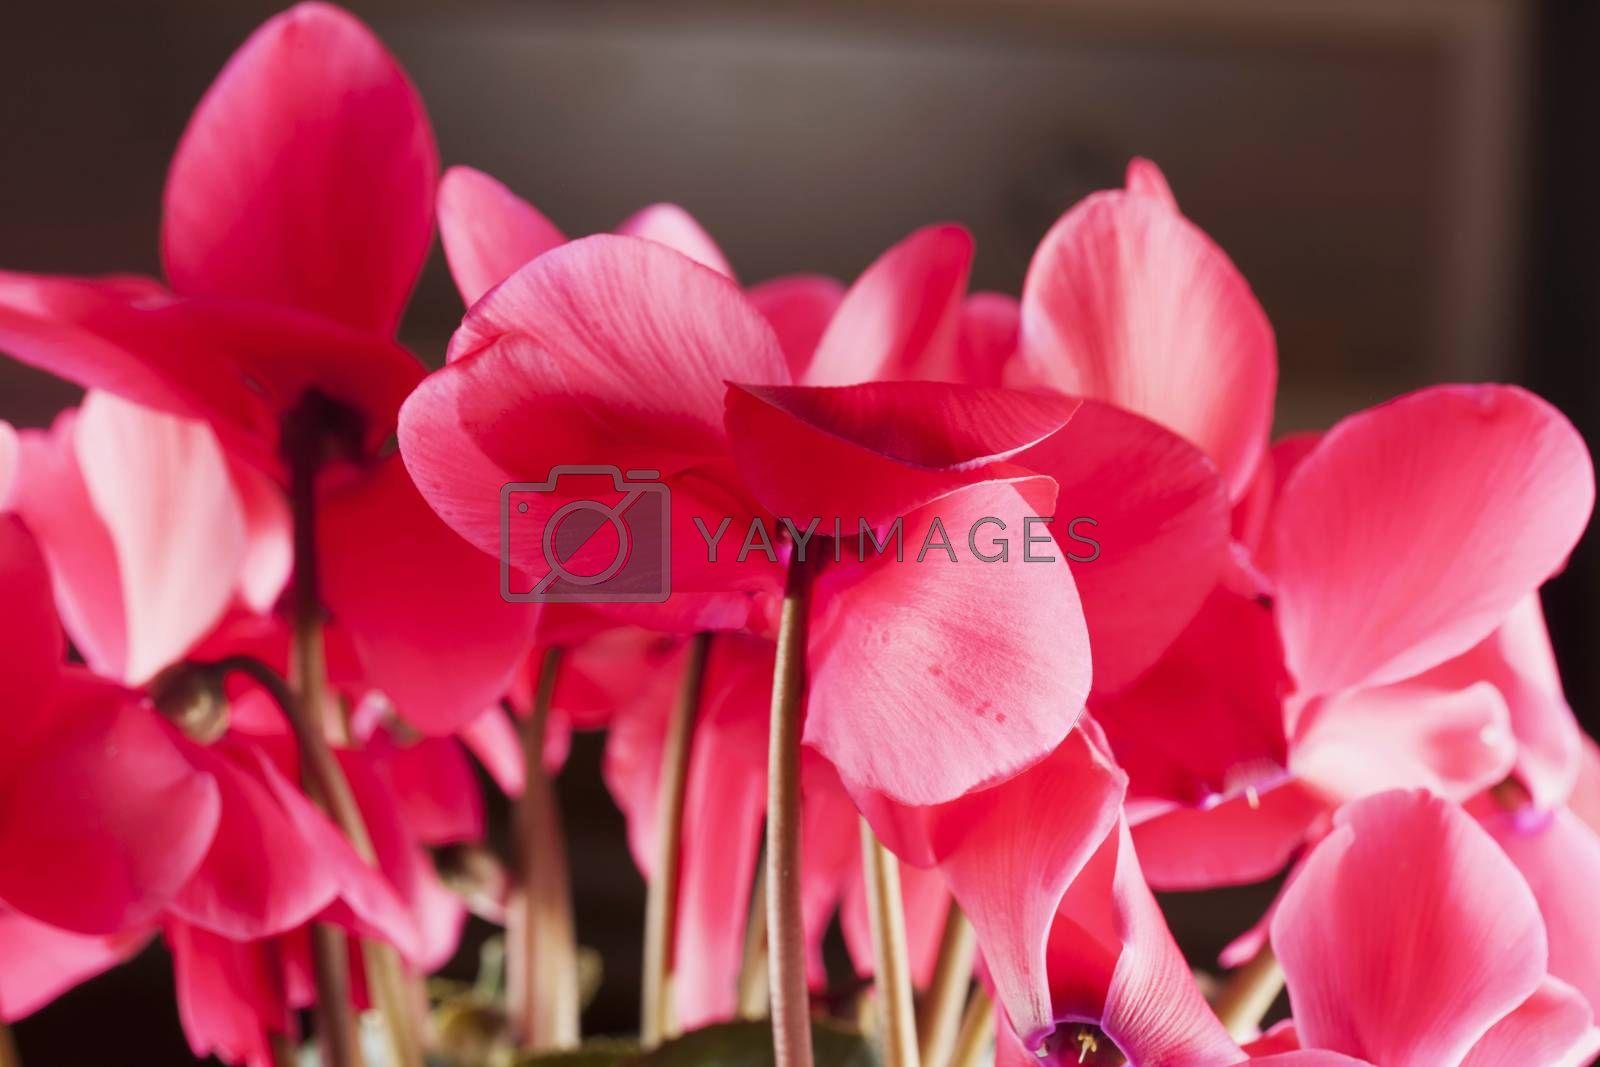 Pink cyclamen in close up, horizontal image